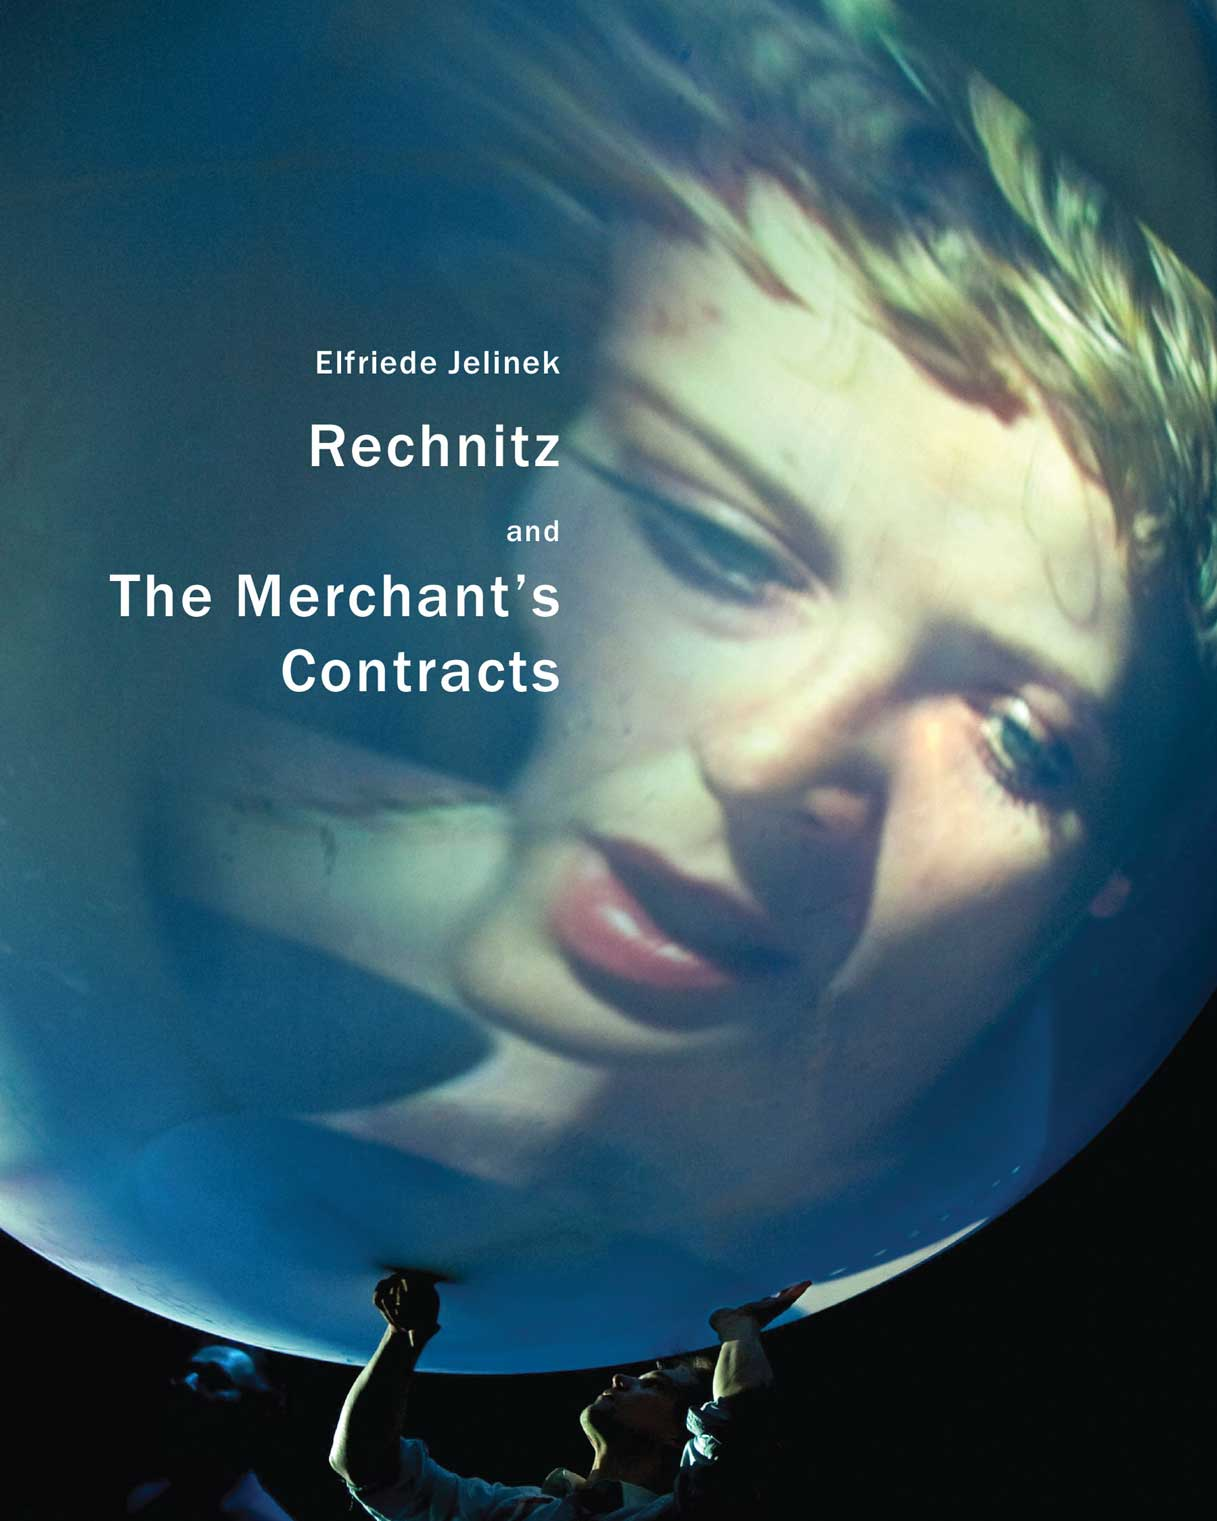 Rechnitz and The Merchant's Contracts by Elfriede Jelinek | Seagull Books